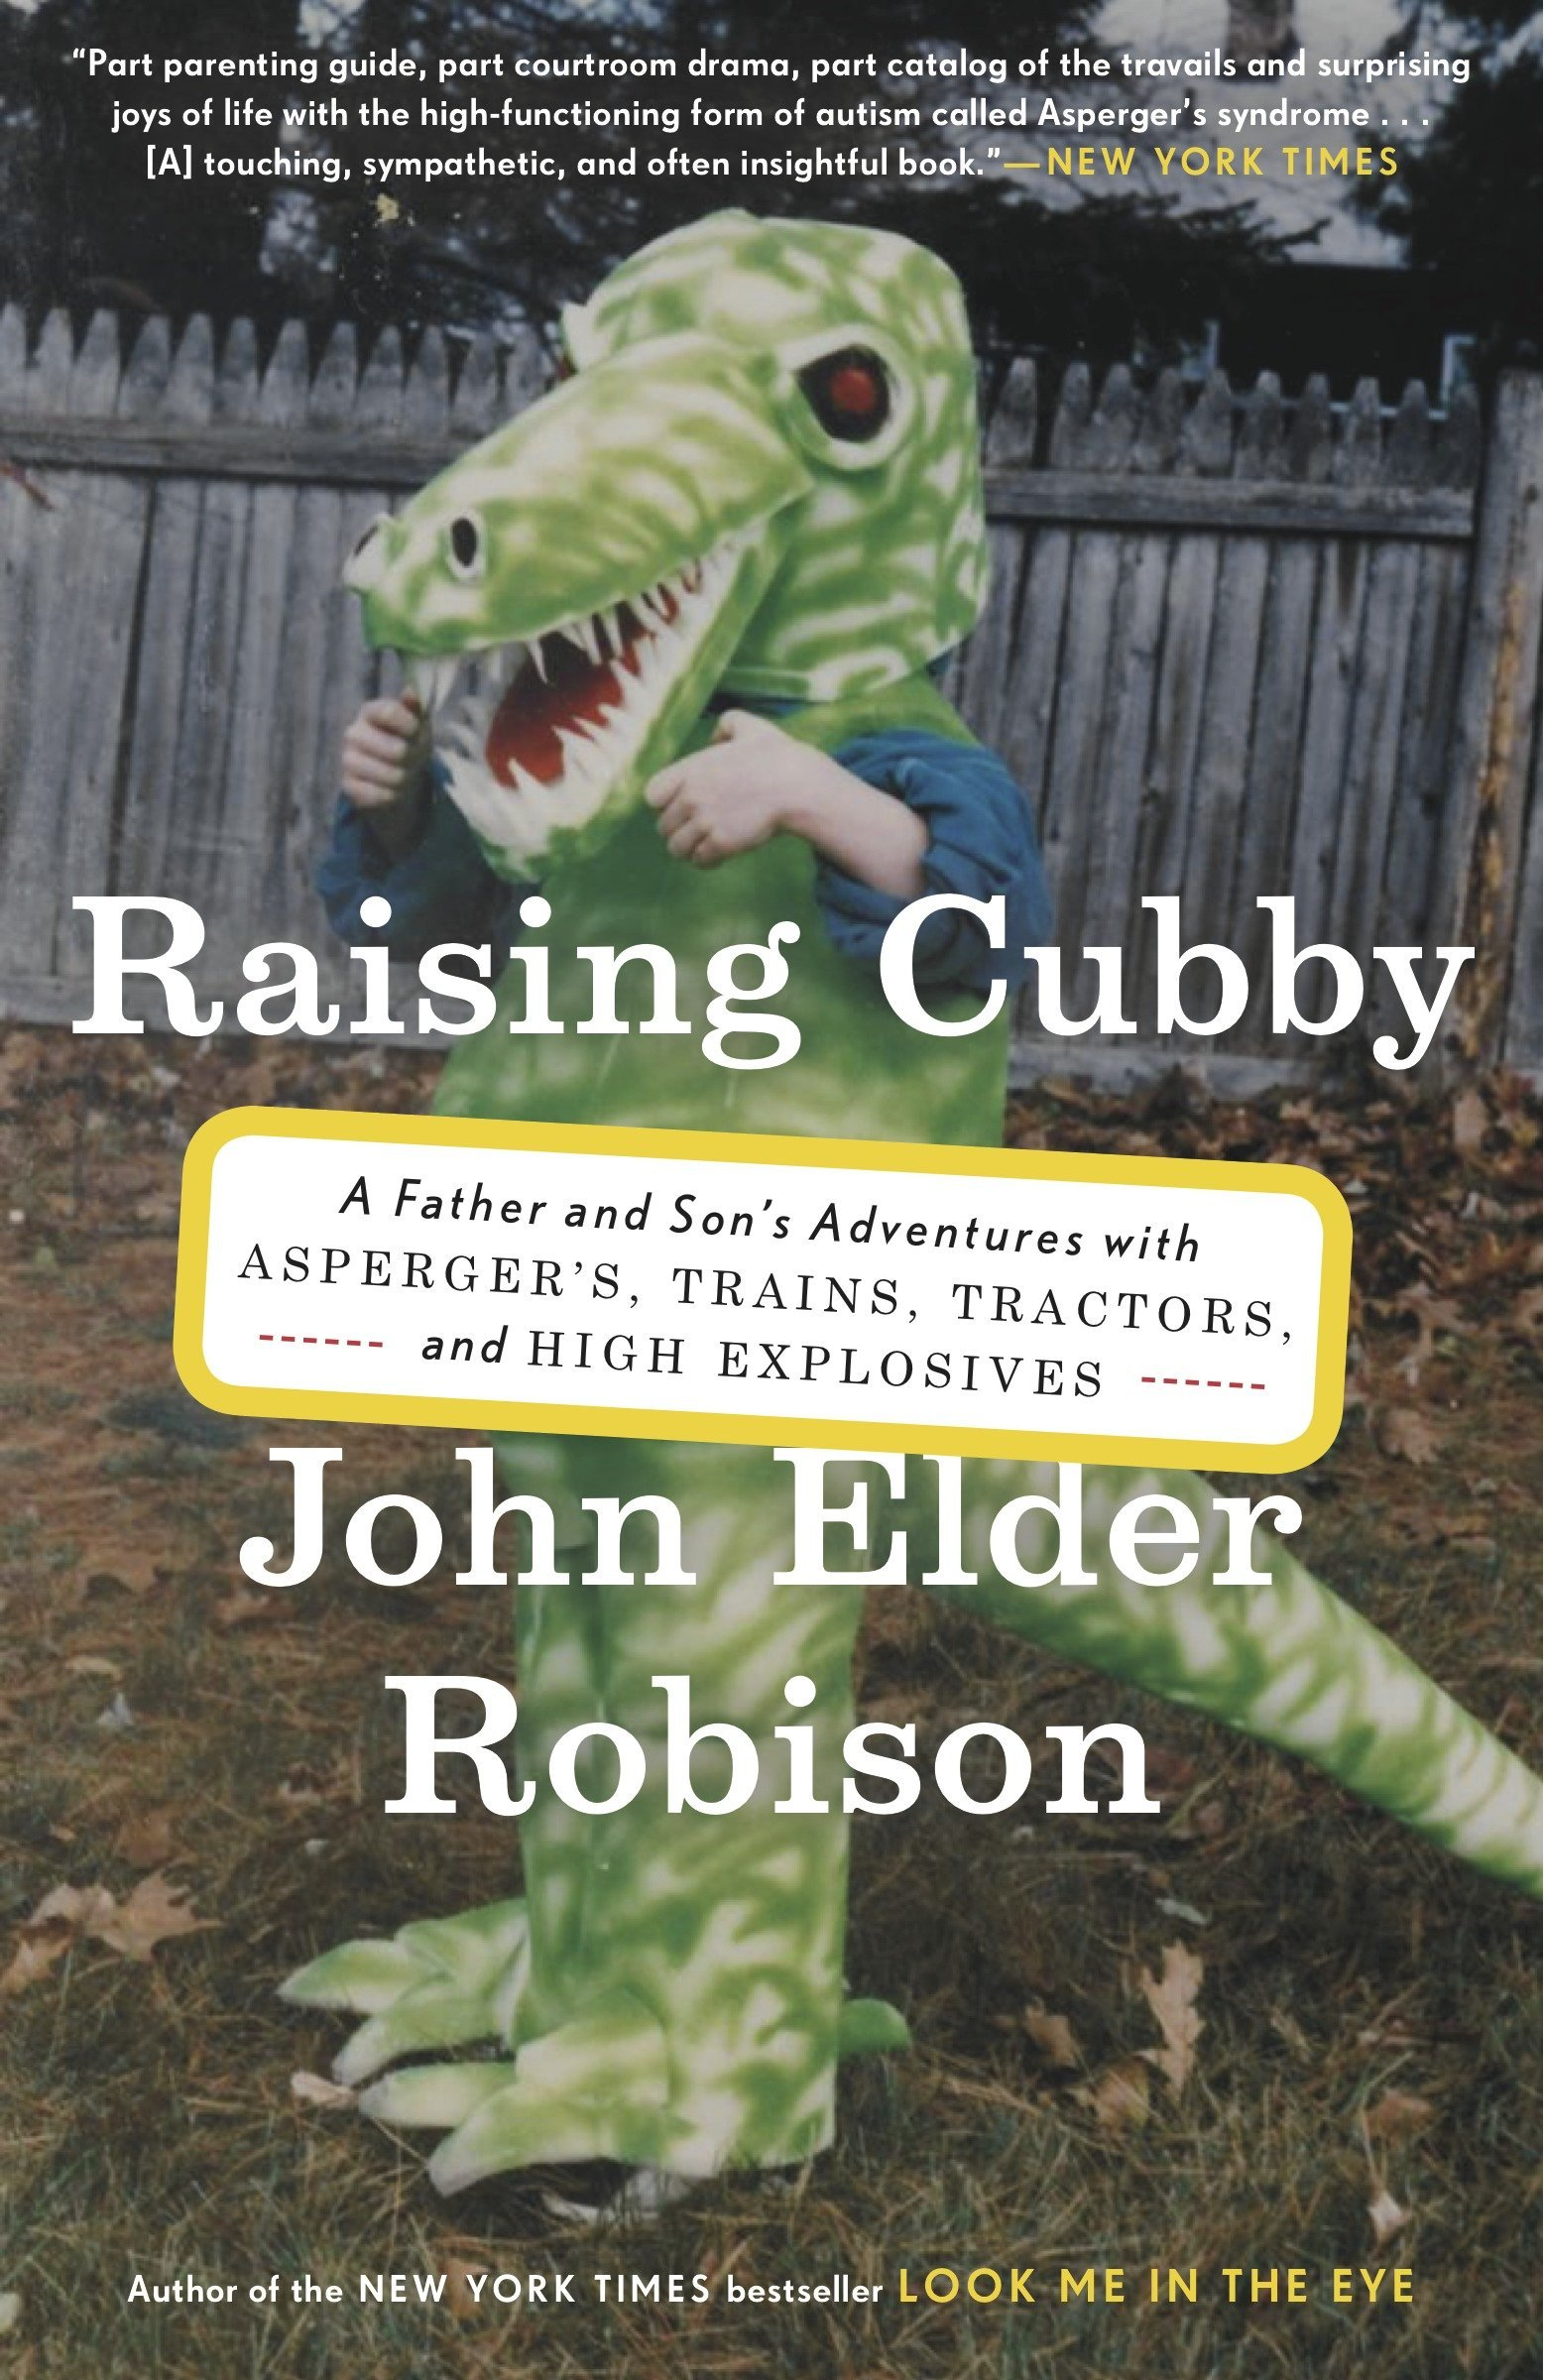 Raising Cubby: A Father and Son's Adventures with Asperger's, Trains, Tractors, and High Explosives pdf